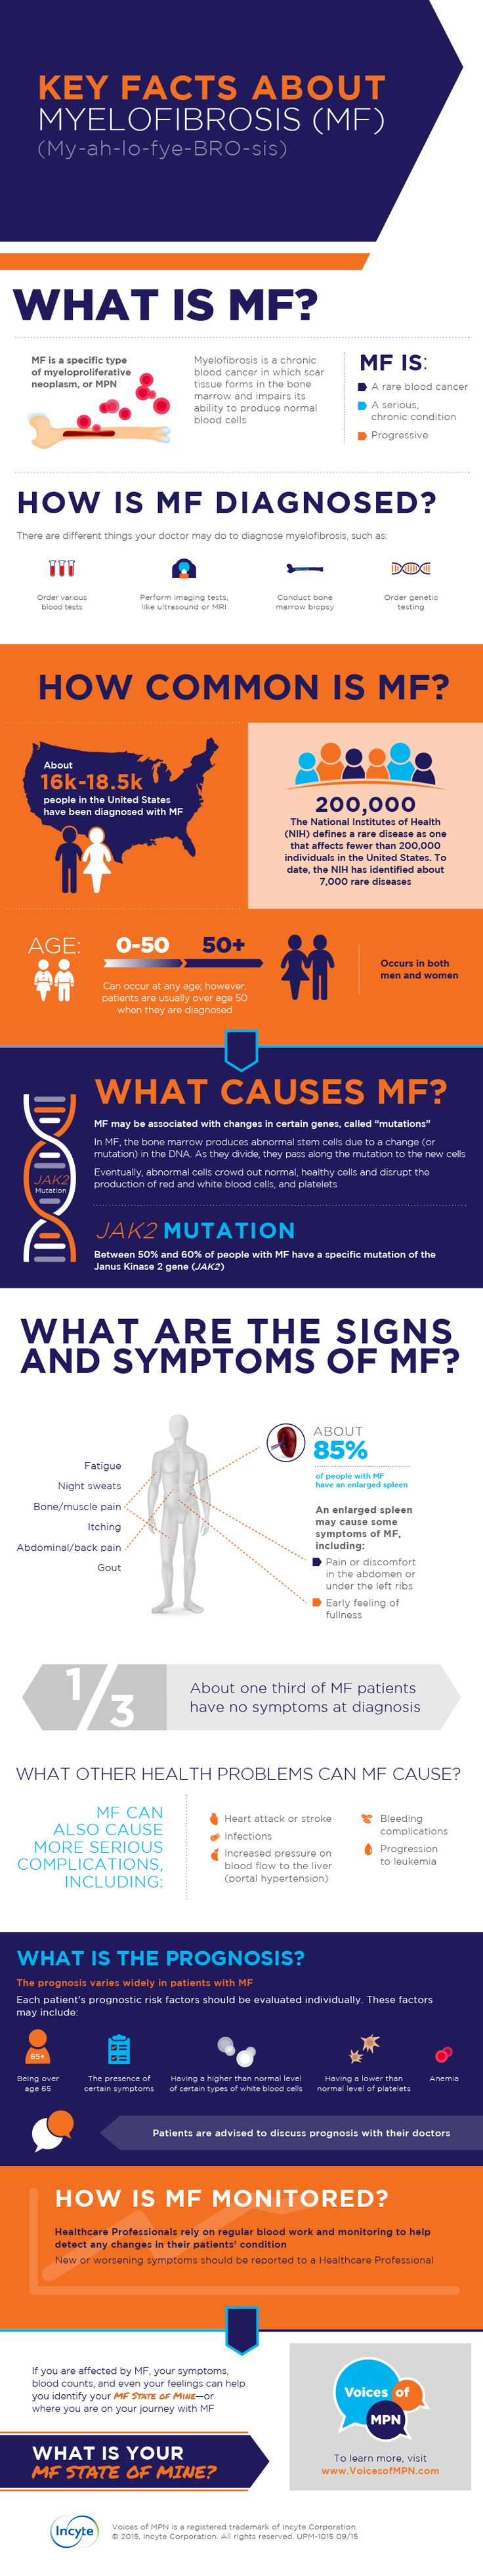 State of Mine Saturday: Today, we have just published a new myelofibrosis (MF) infographic. Please take a look and share with the community!